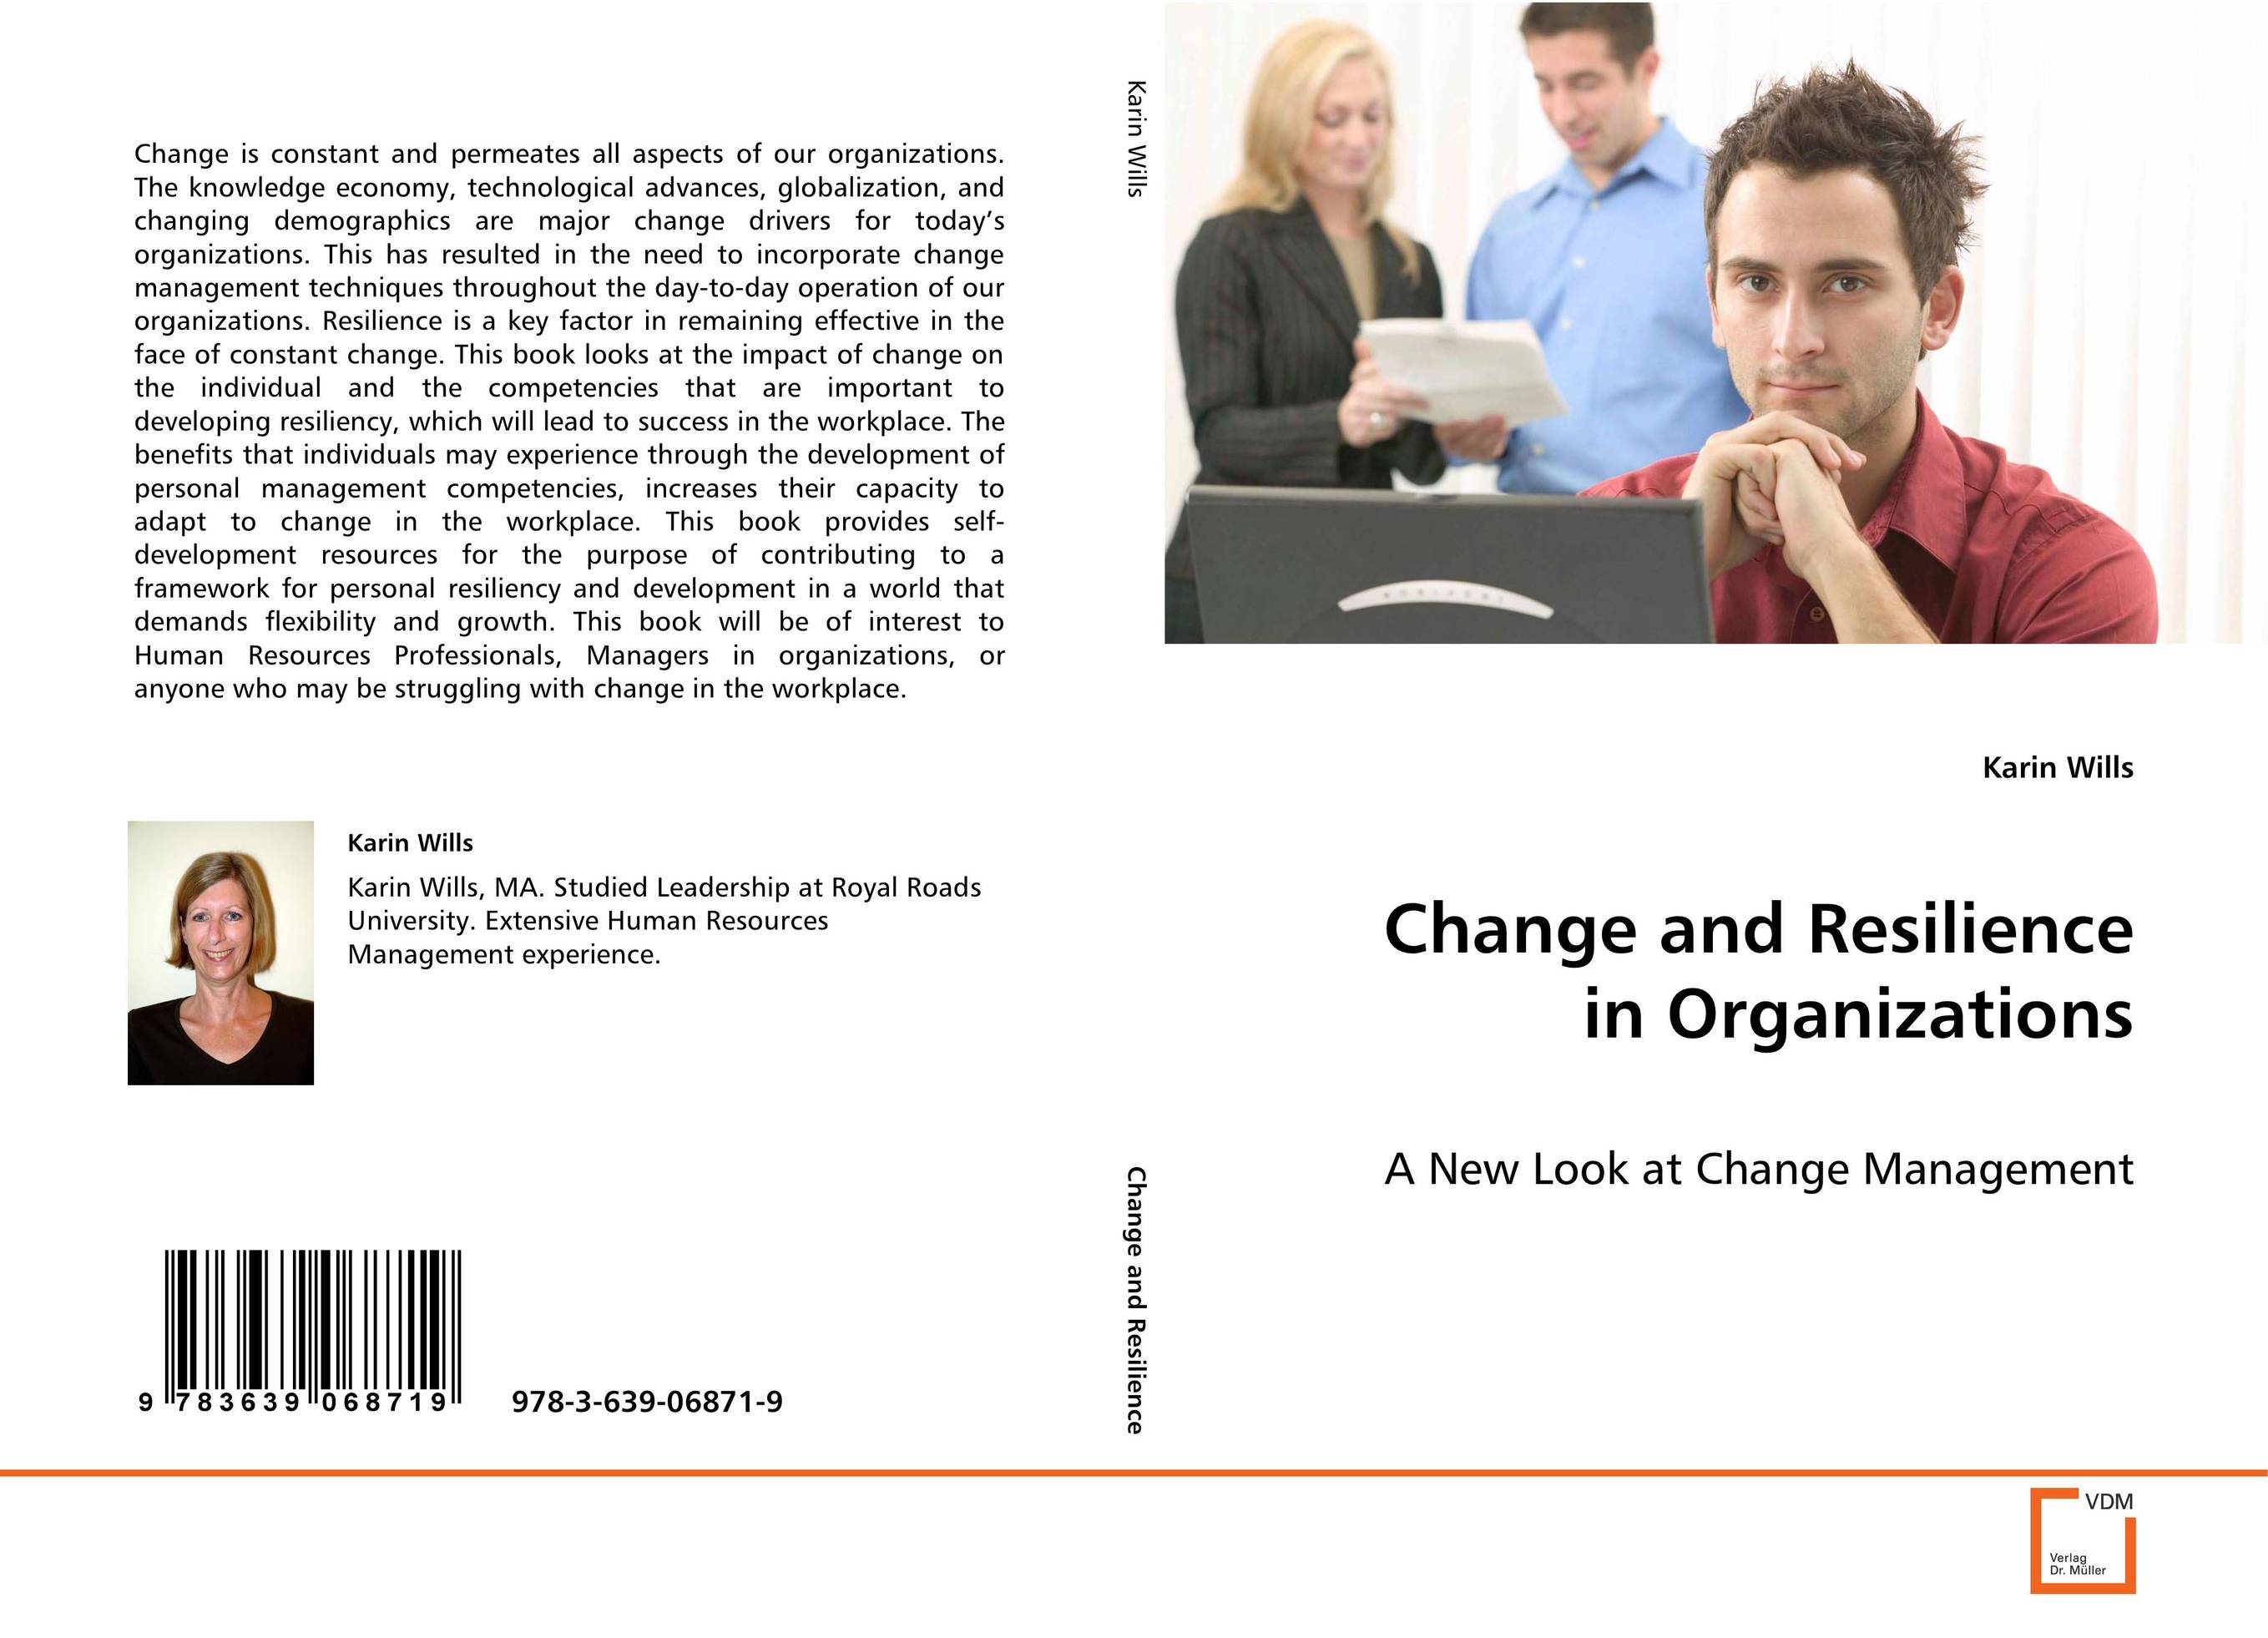 Change and Resilience in Organizations